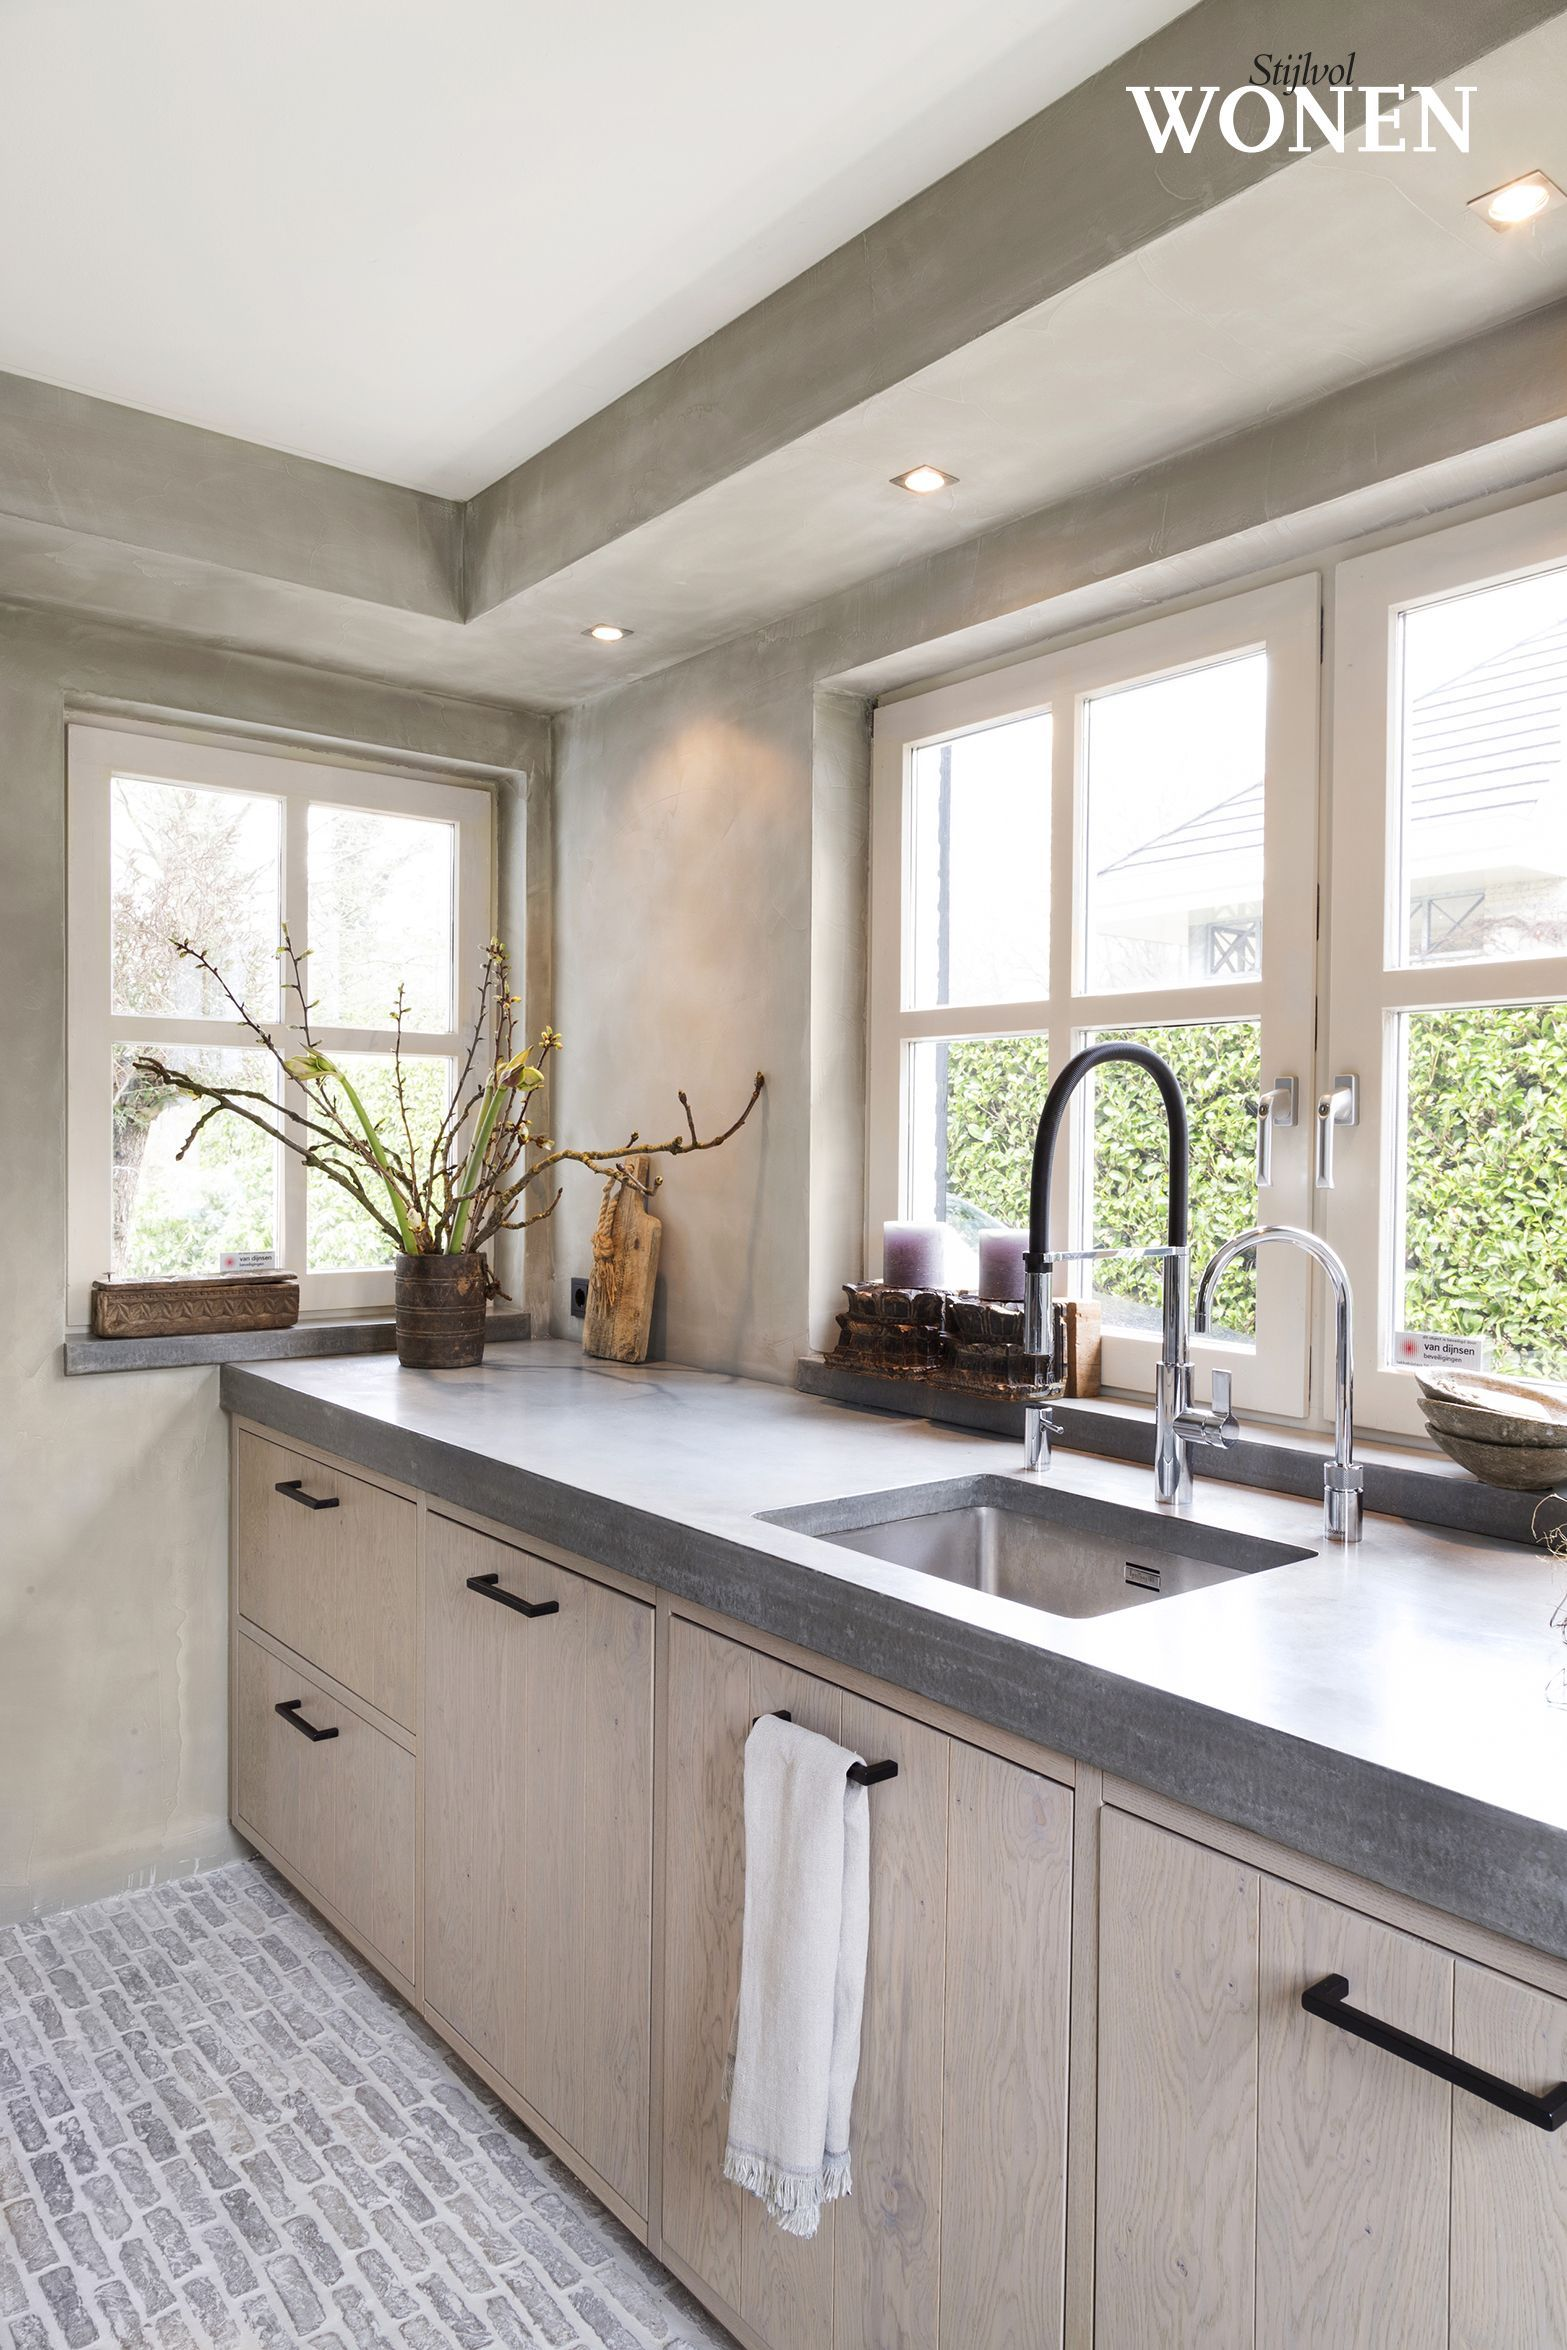 No Place Like Our Home New Kitchen Vignette S Decorating Above Kitchen Cabinets Cabinet Decor Kitchen Cabinets Decor